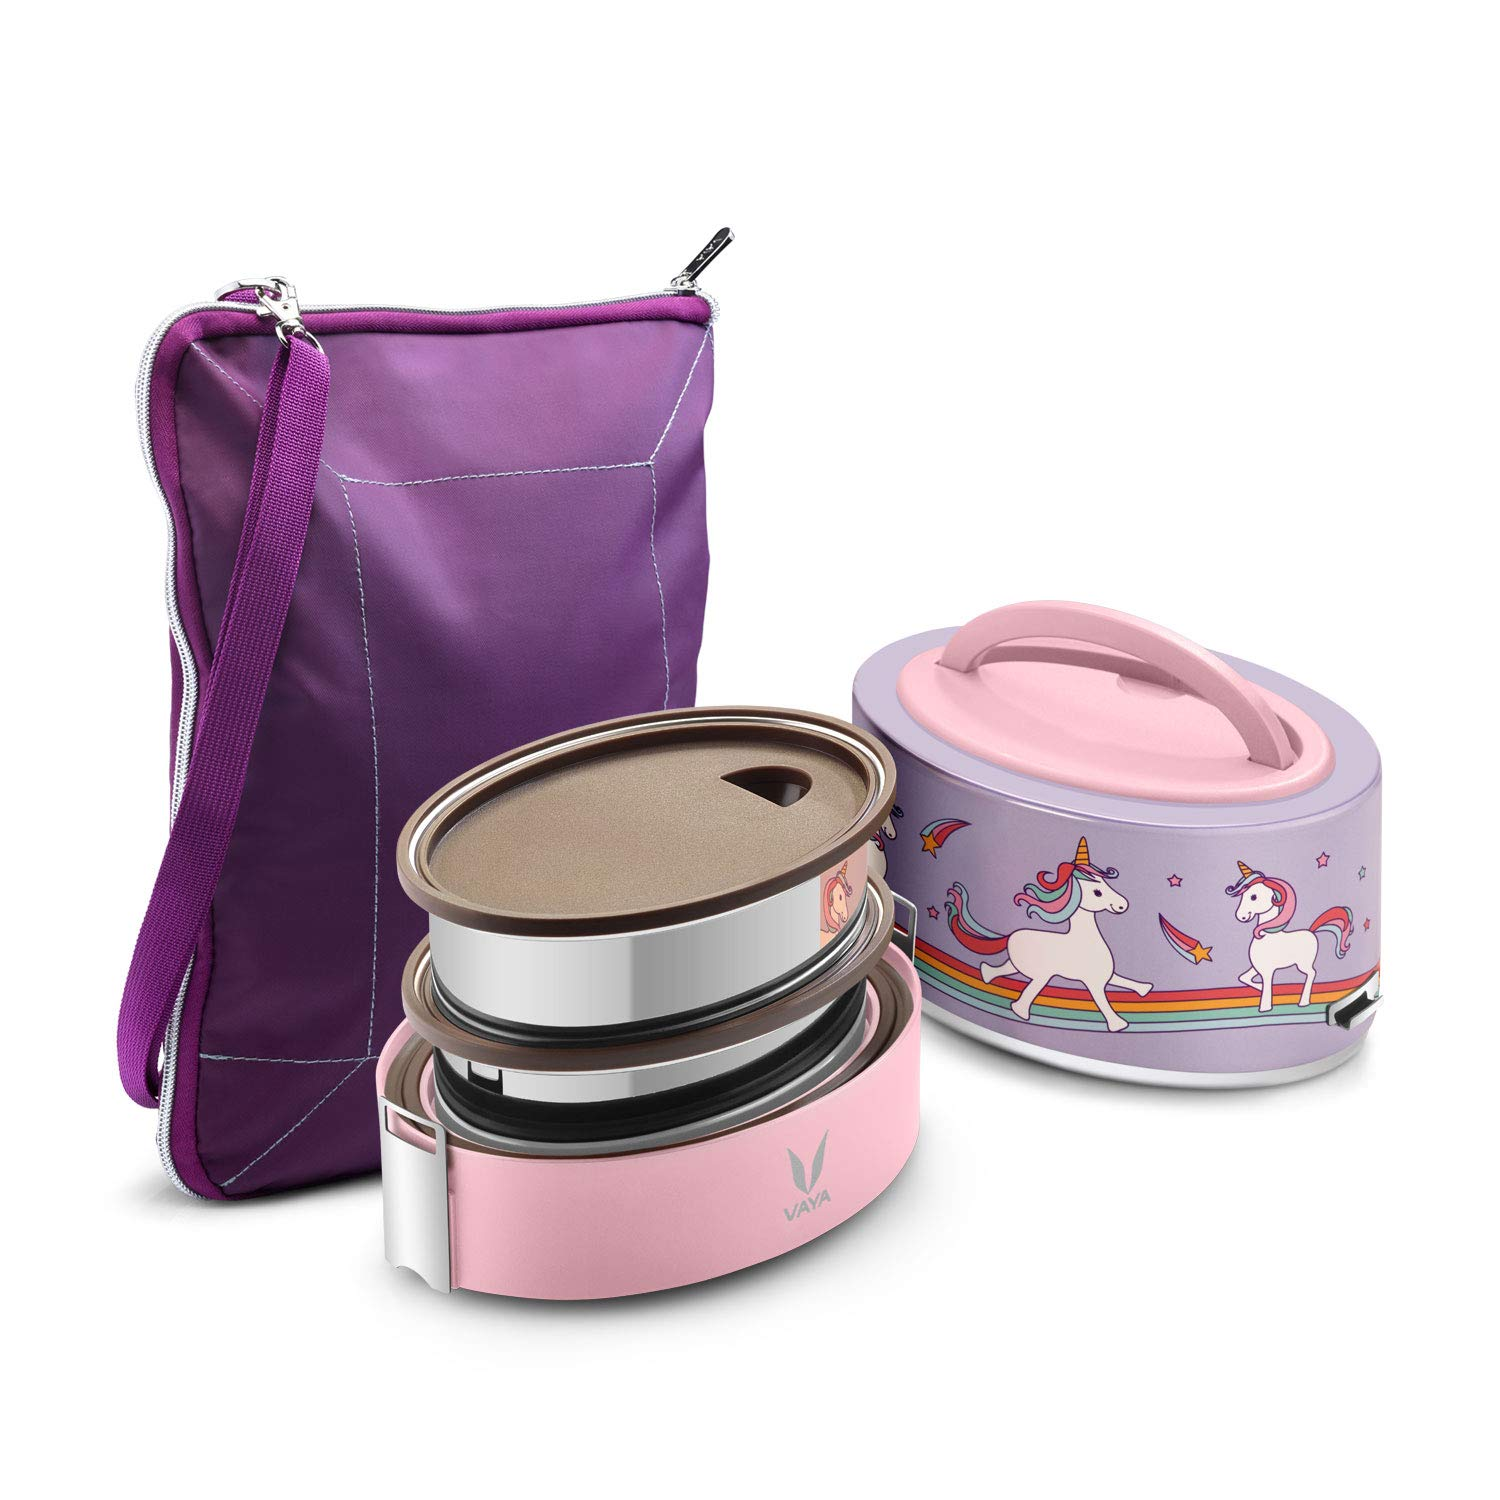 Vaya Tyffyn Unicorn Polished Stainless Steel Lunch Box for Kids with Bagmat, 600 ml, 2 Containers, Pink (B07H6L7825) Amazon Price History, Amazon Price Tracker